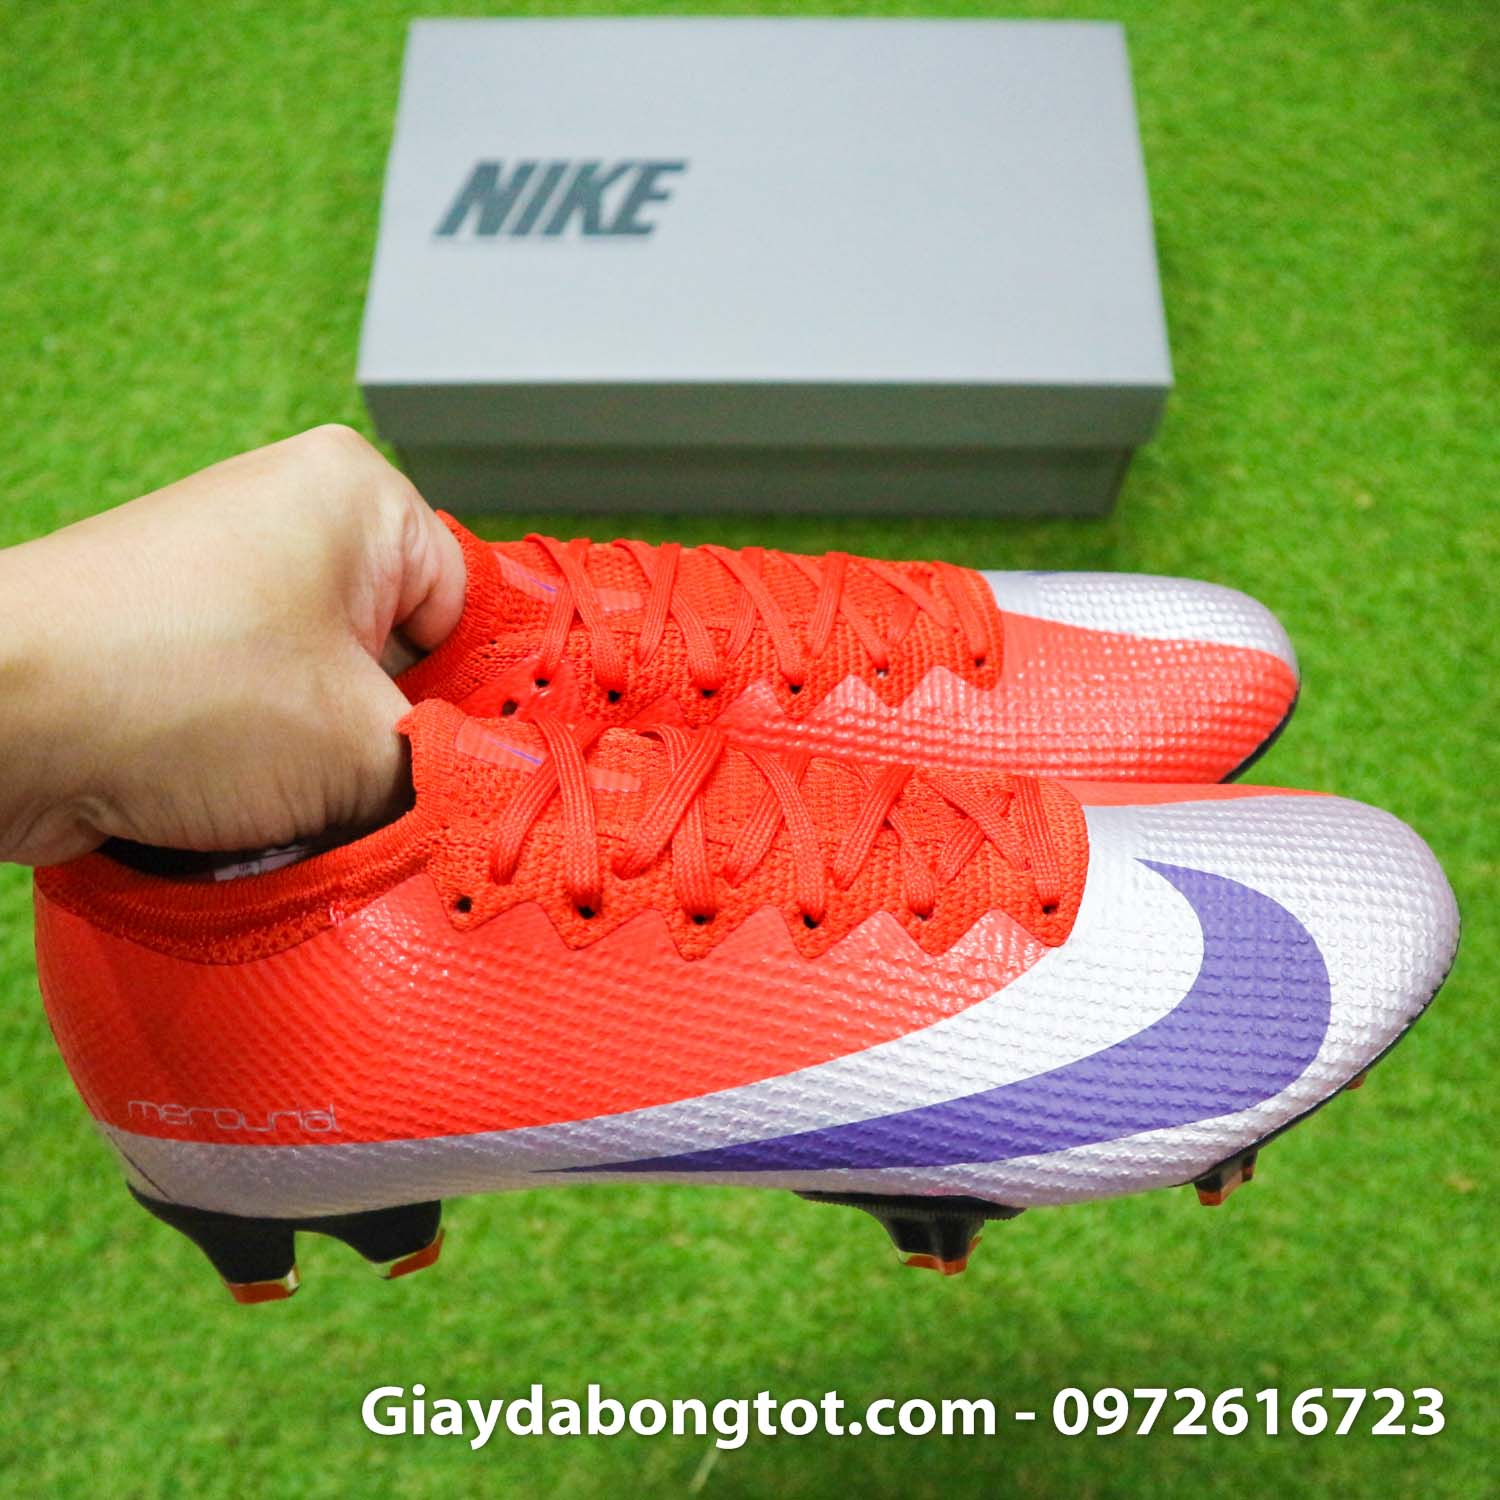 Giay bong da nike mercurial vapor 13 elite fg do bac future dna (12)